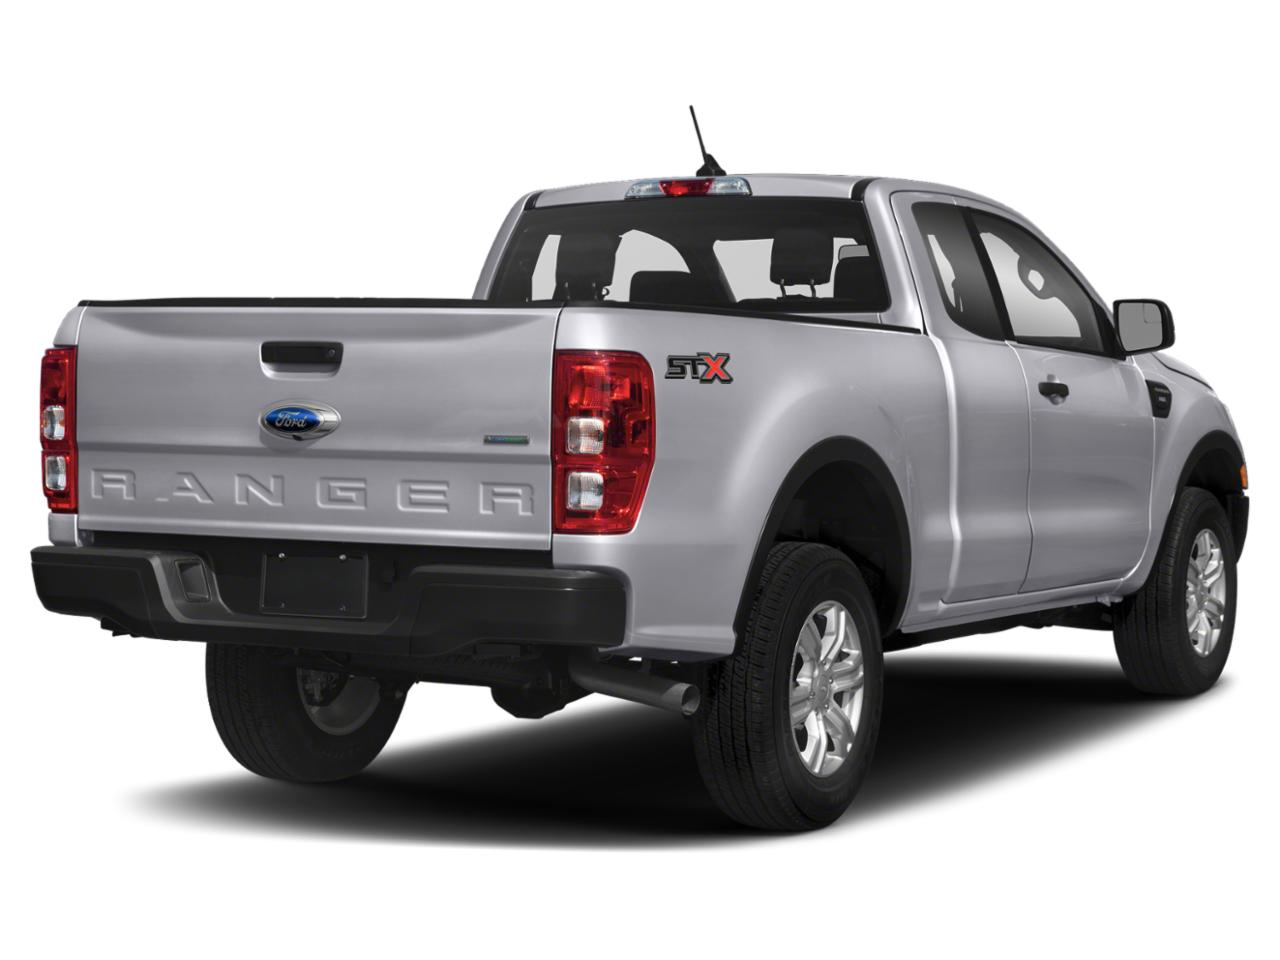 2020 Ford Ranger XL Extended Cab Pickup Slide